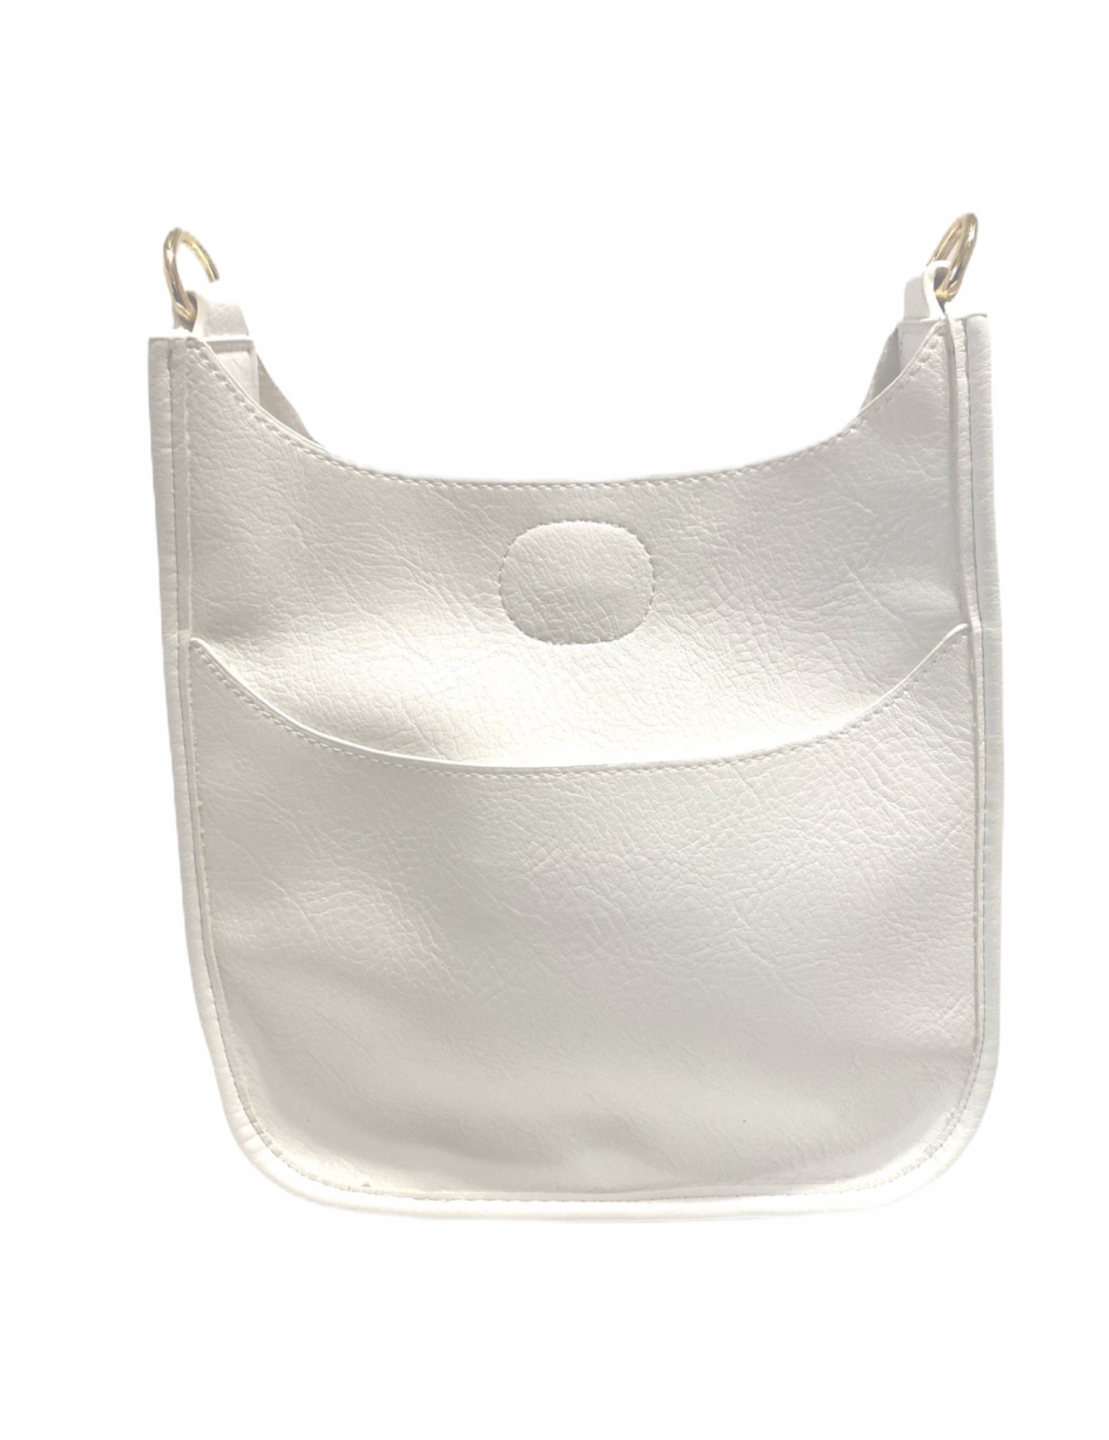 Petite White Messenger Bag (STRAP SOLD SEPARATELY)